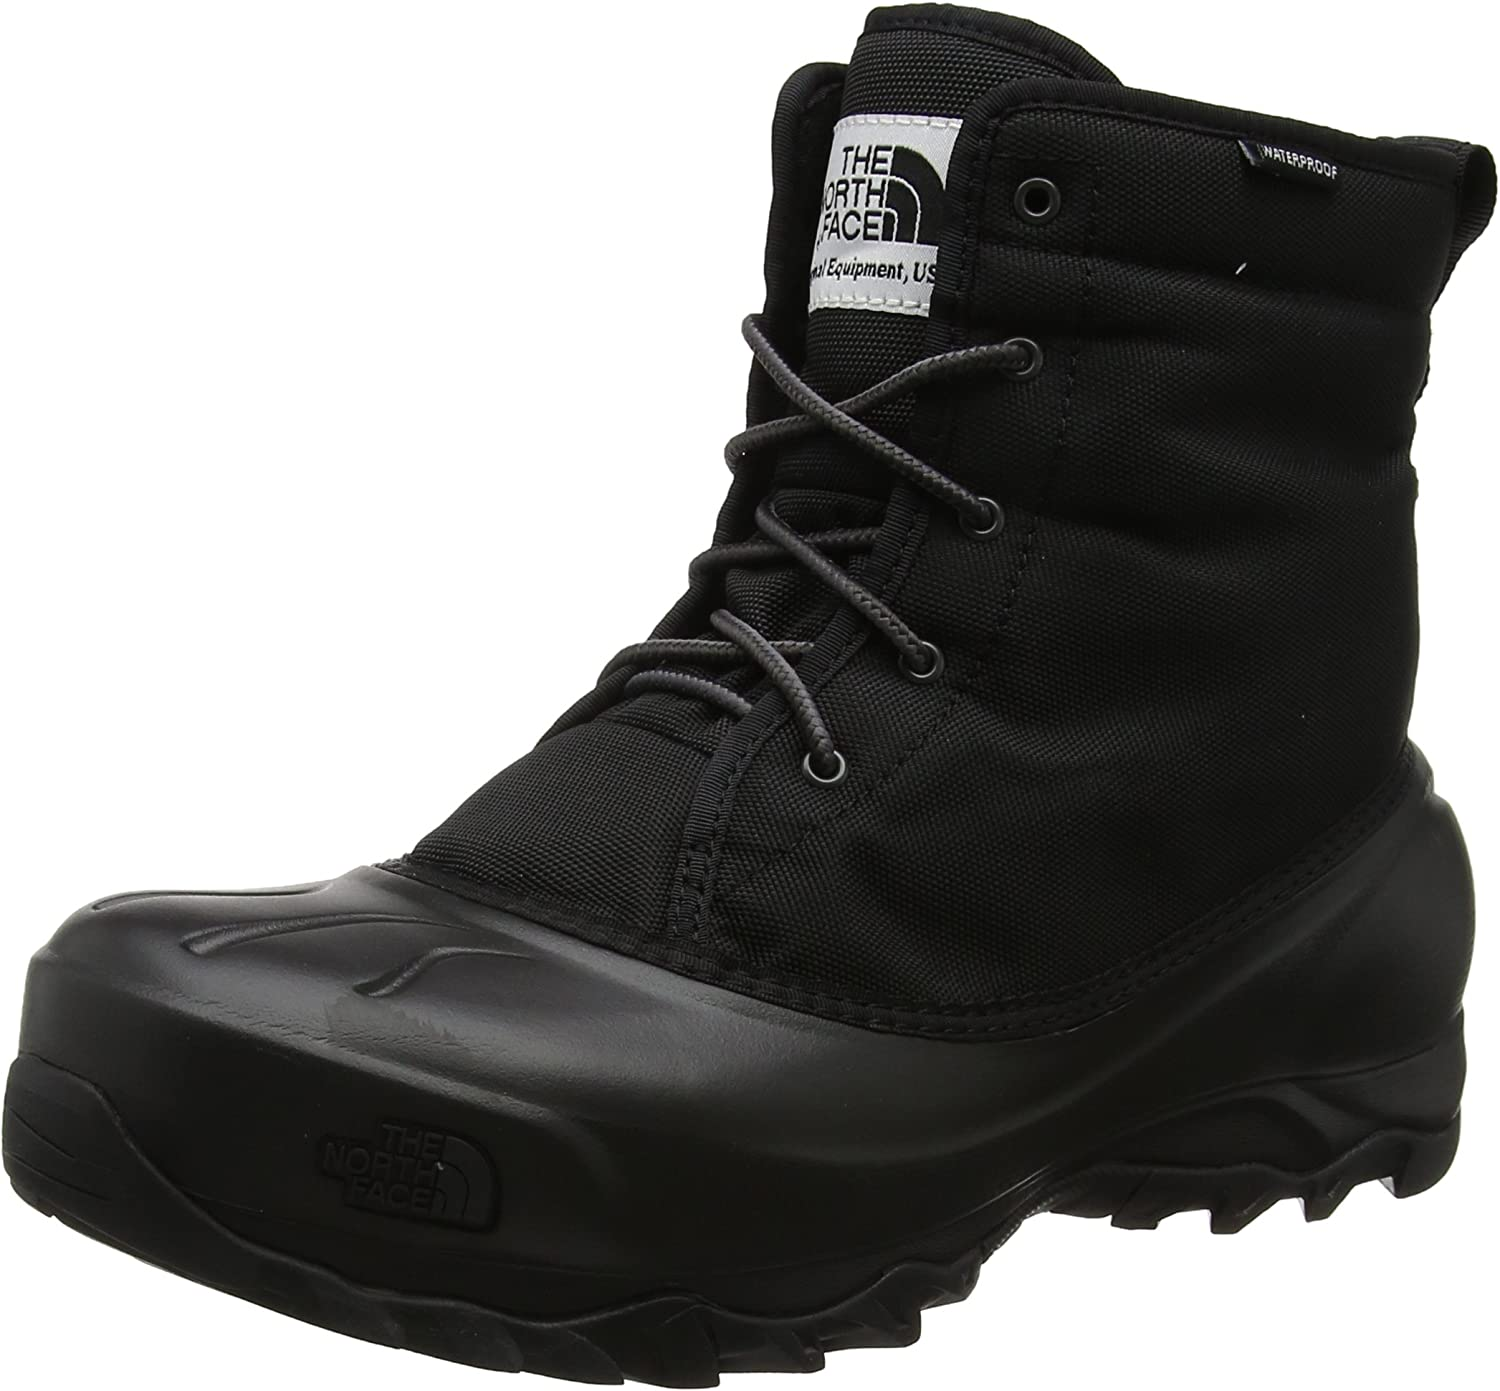 The North Face Men's Tsumoru Boots (Men's Sizes 7-13)